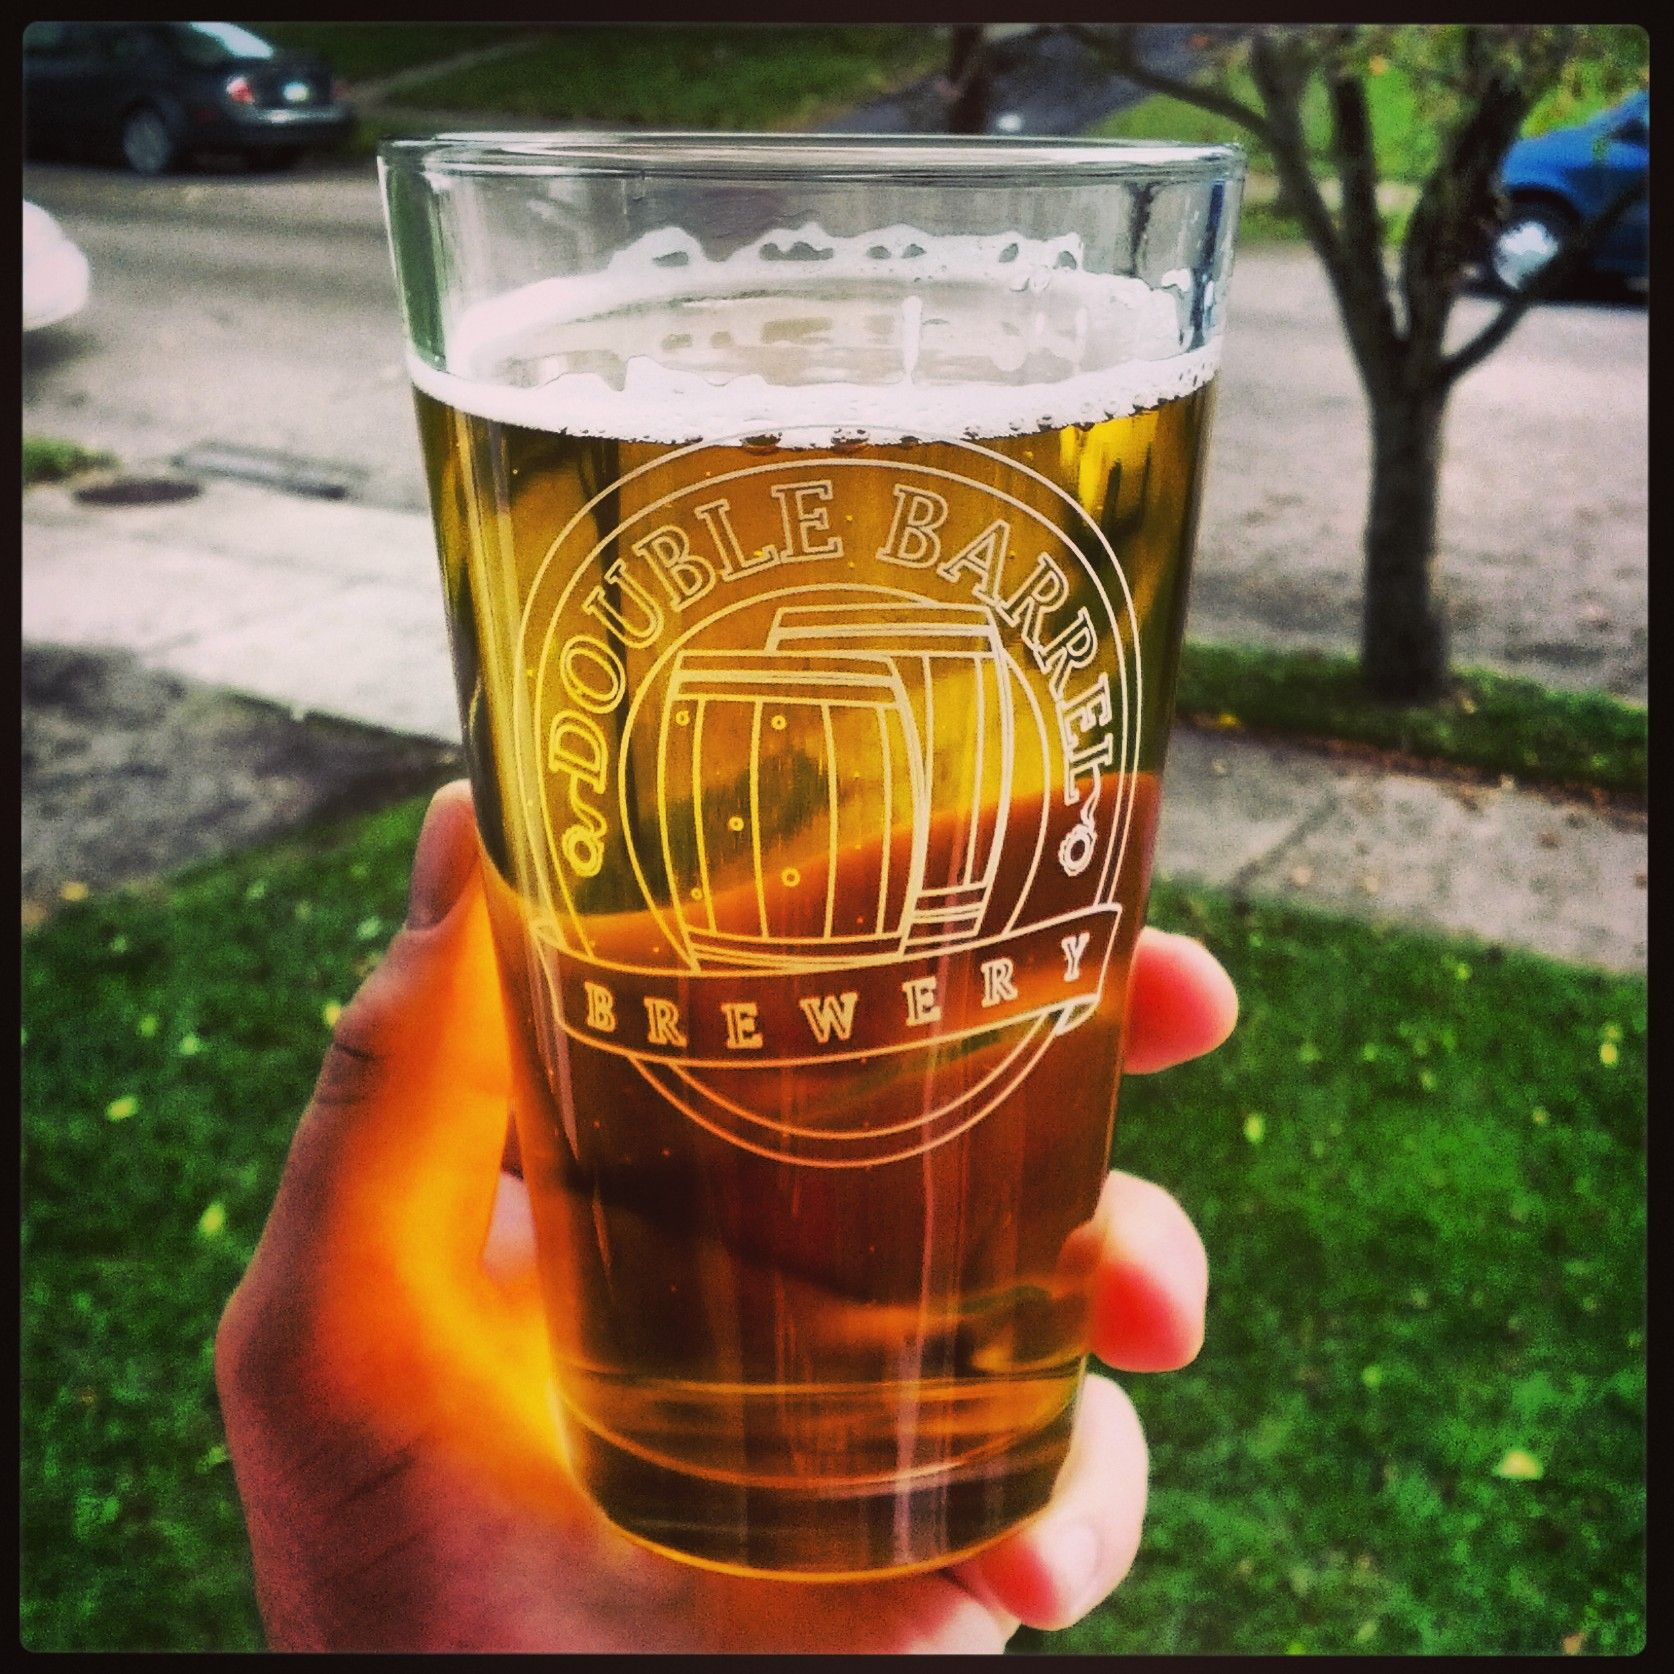 Home wine making and beer brewing recipes quality wine - When It Comes To Brewing Beer At Home We Want A Clean And Clear Homebrew Here Are 10 Tips To Help You Achieve That Crystal Clear Commercial Quality Beer